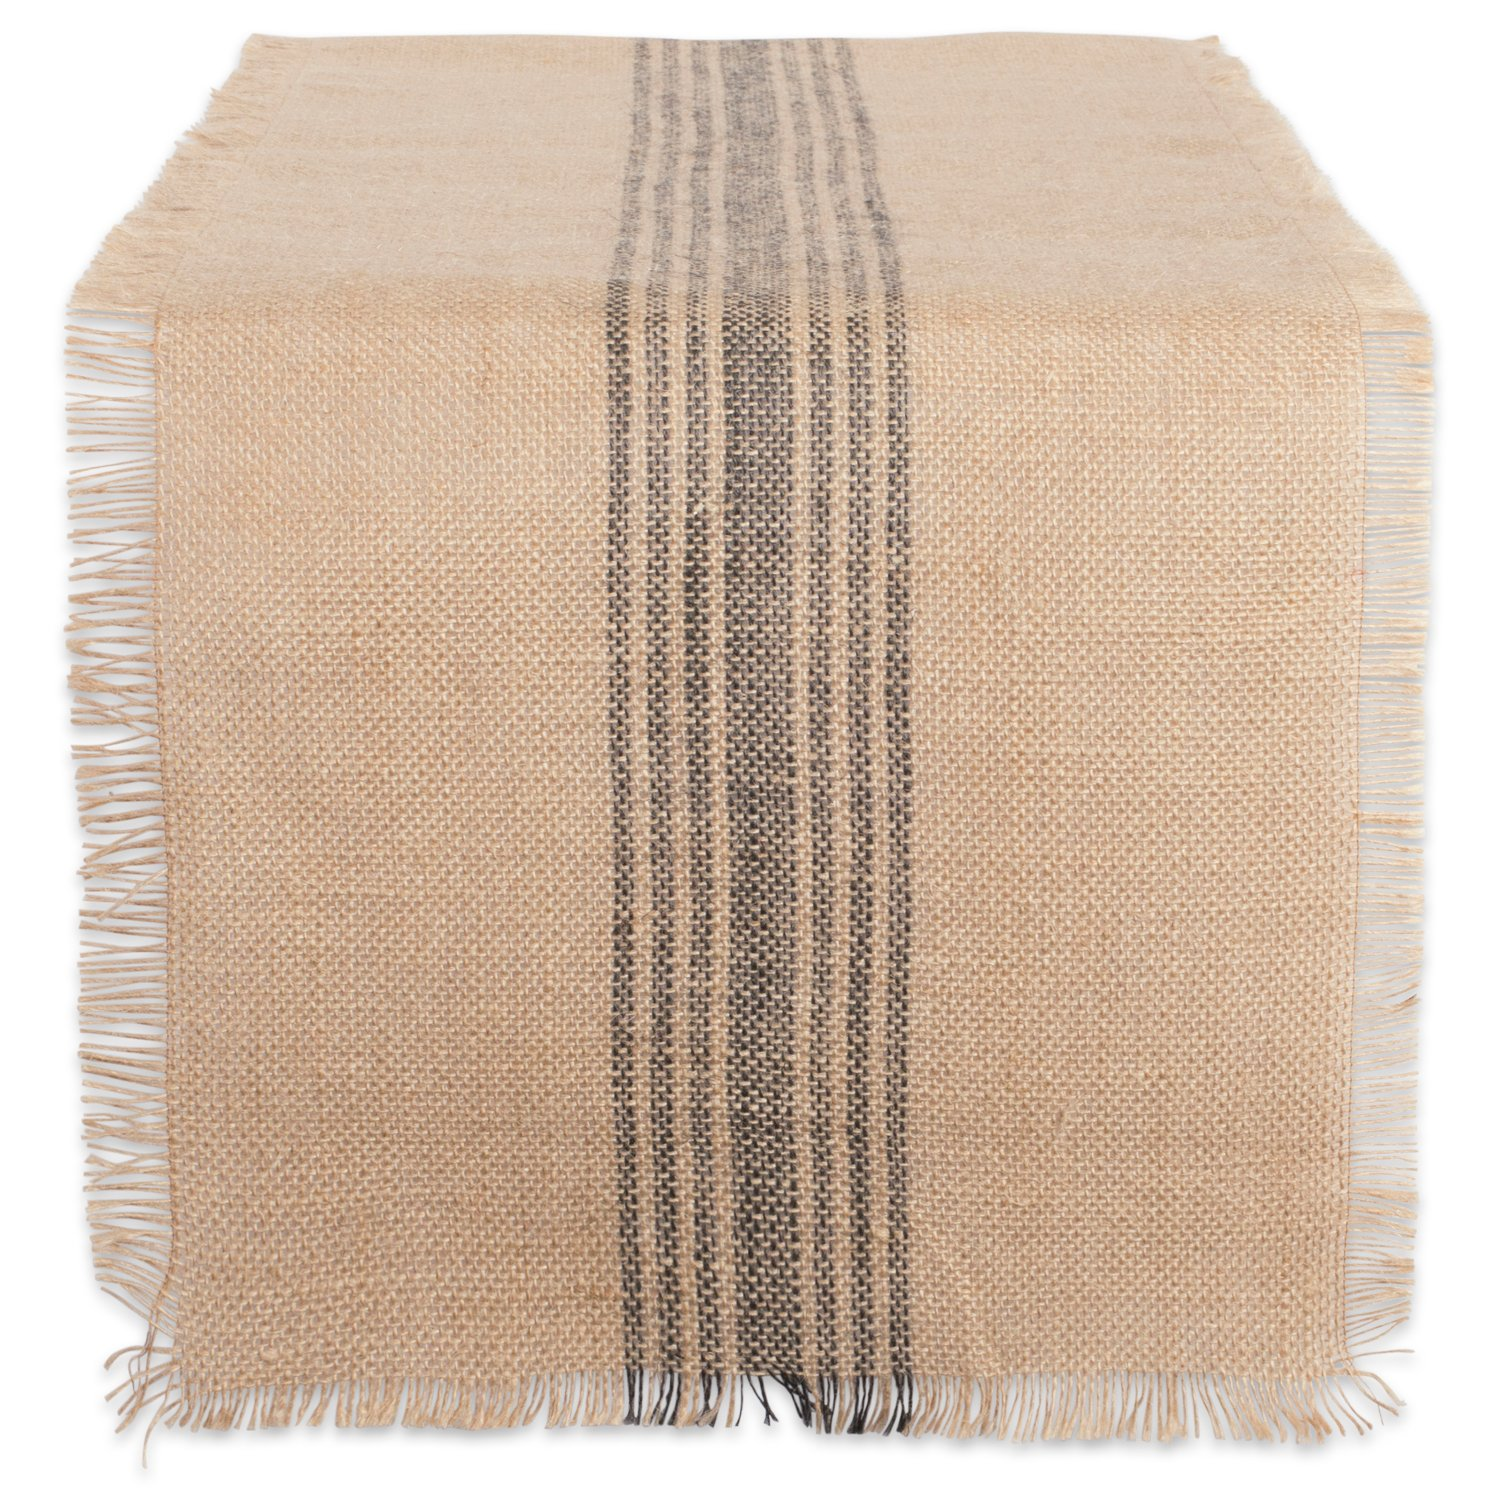 DII 14x72 Jute/Burlap Table Runner, Stripe Mineral Grey - Perfect for Fall, Thanksgiving, Catering Events, Farmhouse Décor, Dinner Parties, Weddings or Everyday Use